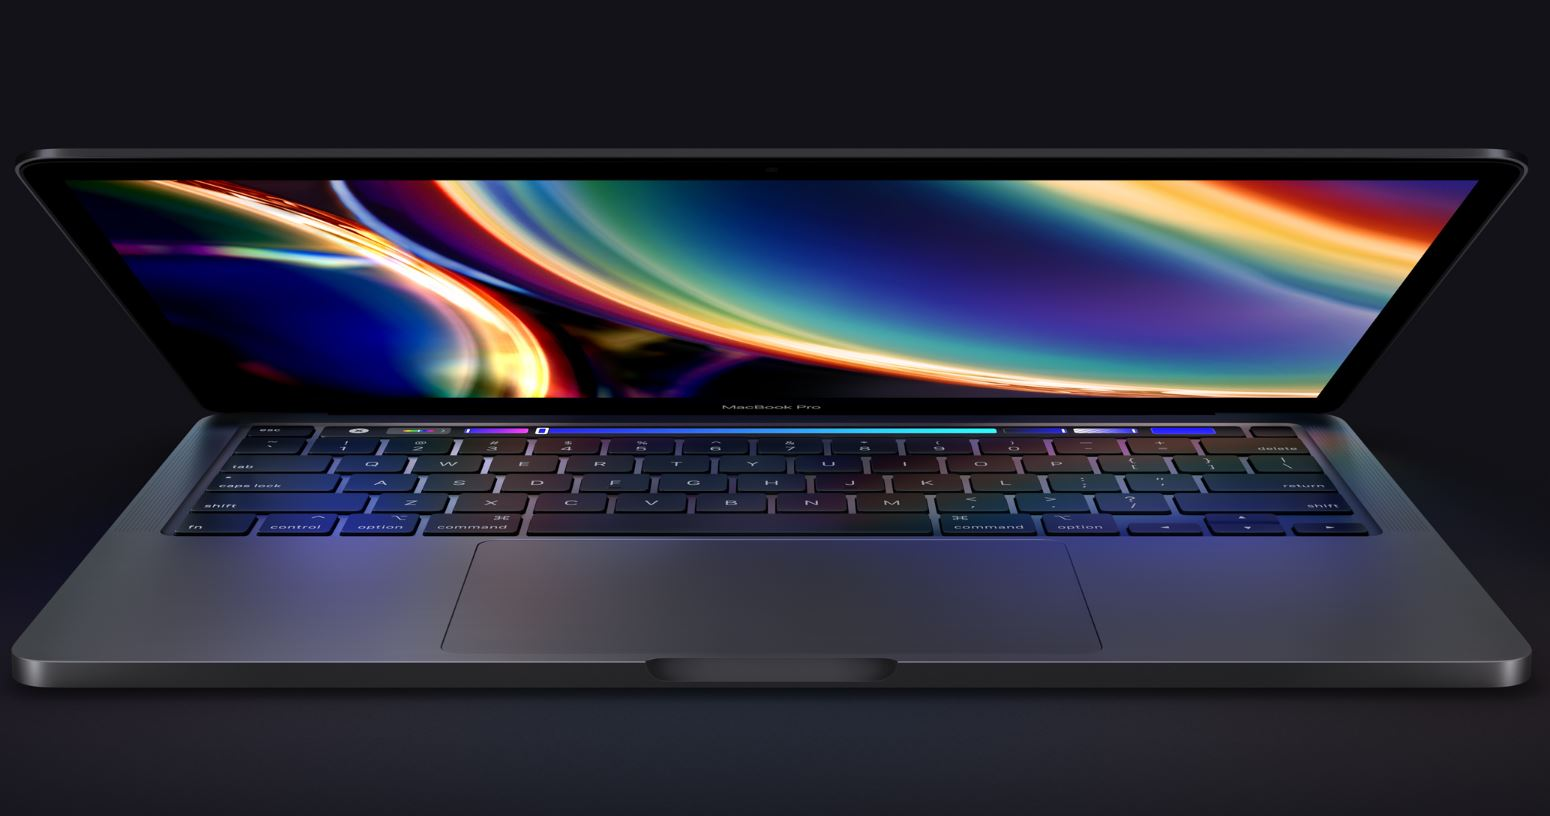 An ARM-powered Macbook could provide much better battery life than current-generation models.